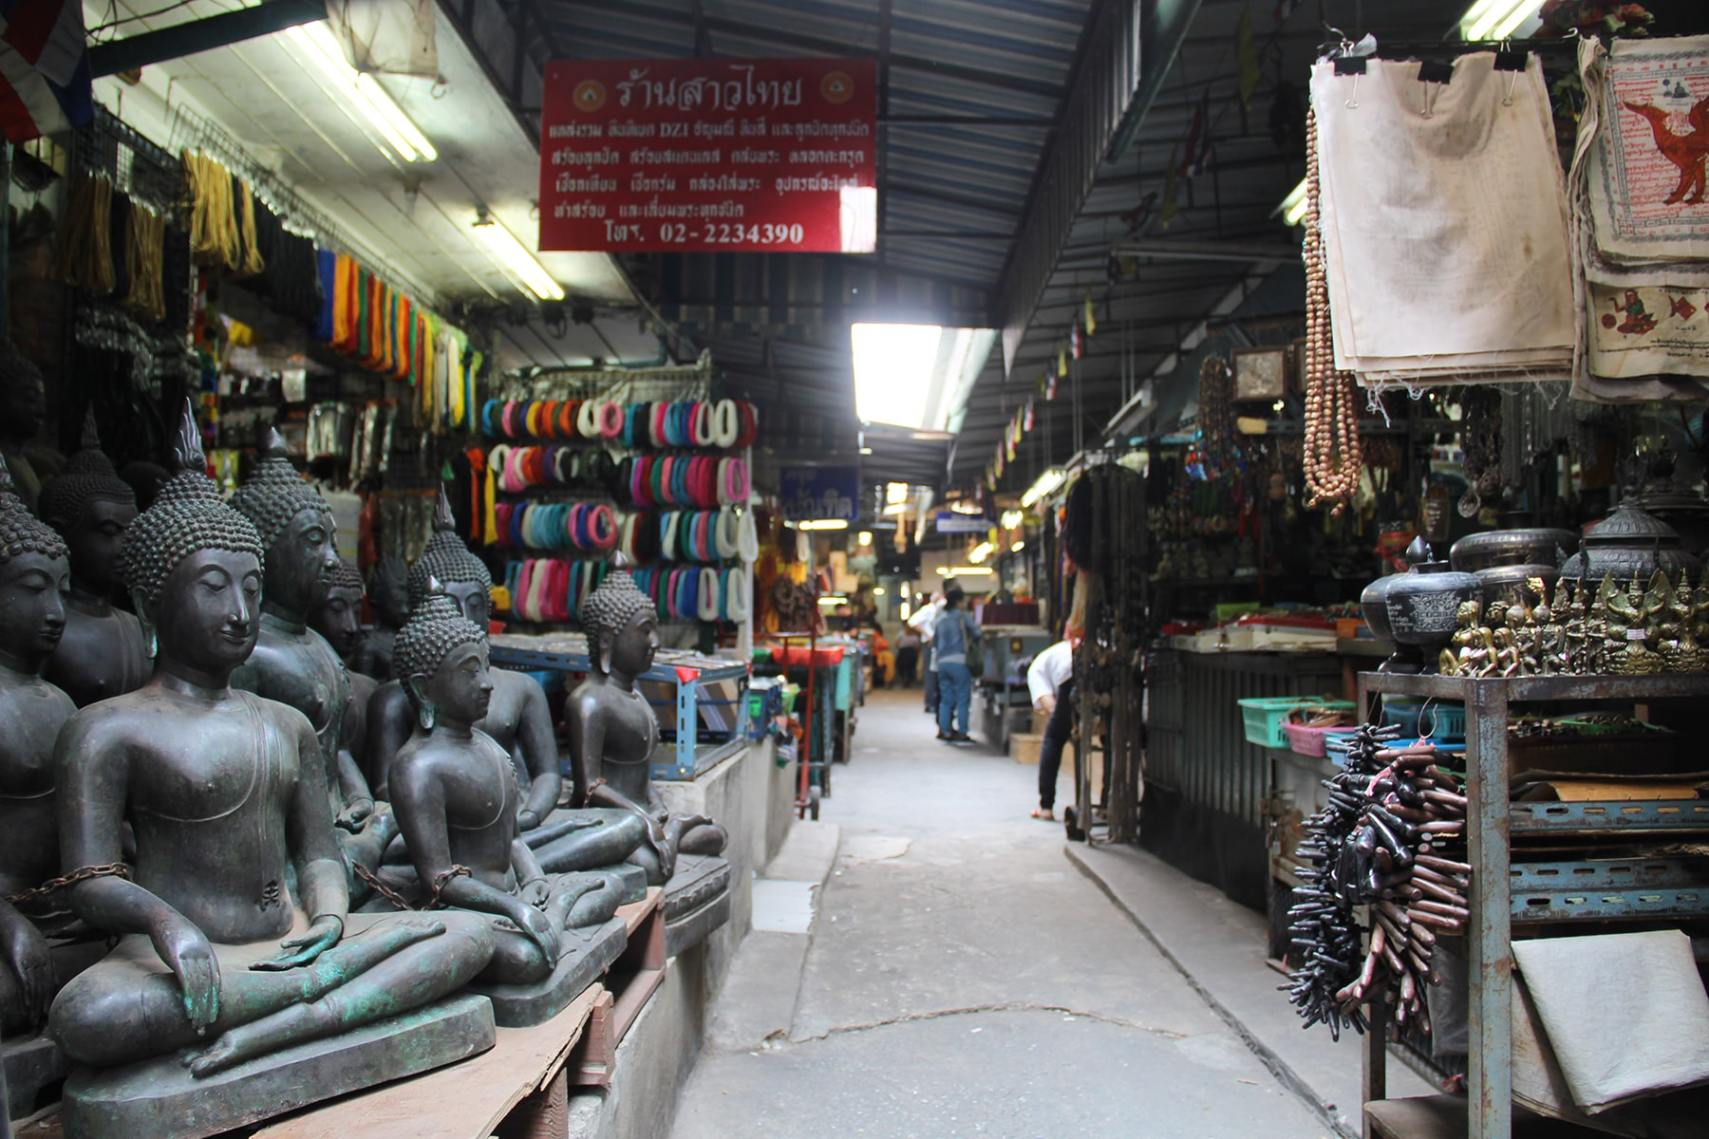 Bangkok amulet market with some Buddha statues up for sale